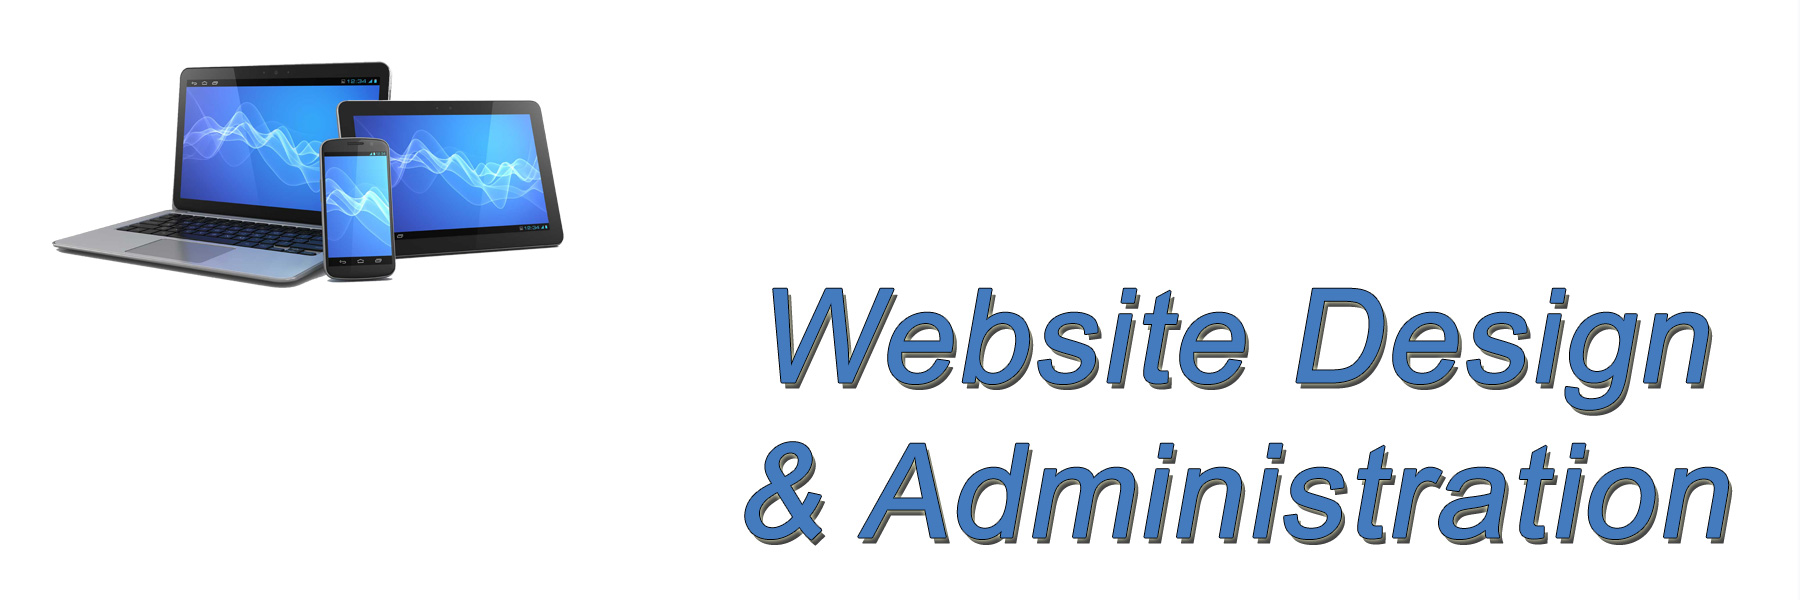 Website design and website administration by Webmasters Northwest, Seattle WA, specializing in branding, Search Engine Optimization (SEO), Search Engine Marketing (SEM) including pay per click marketing, blogs, social media including Facebook, Twitter, Instagram, LinkedIN, Pinterest, and Snapchat, video production and video editing including YouTube, and photography, QR code marketing.